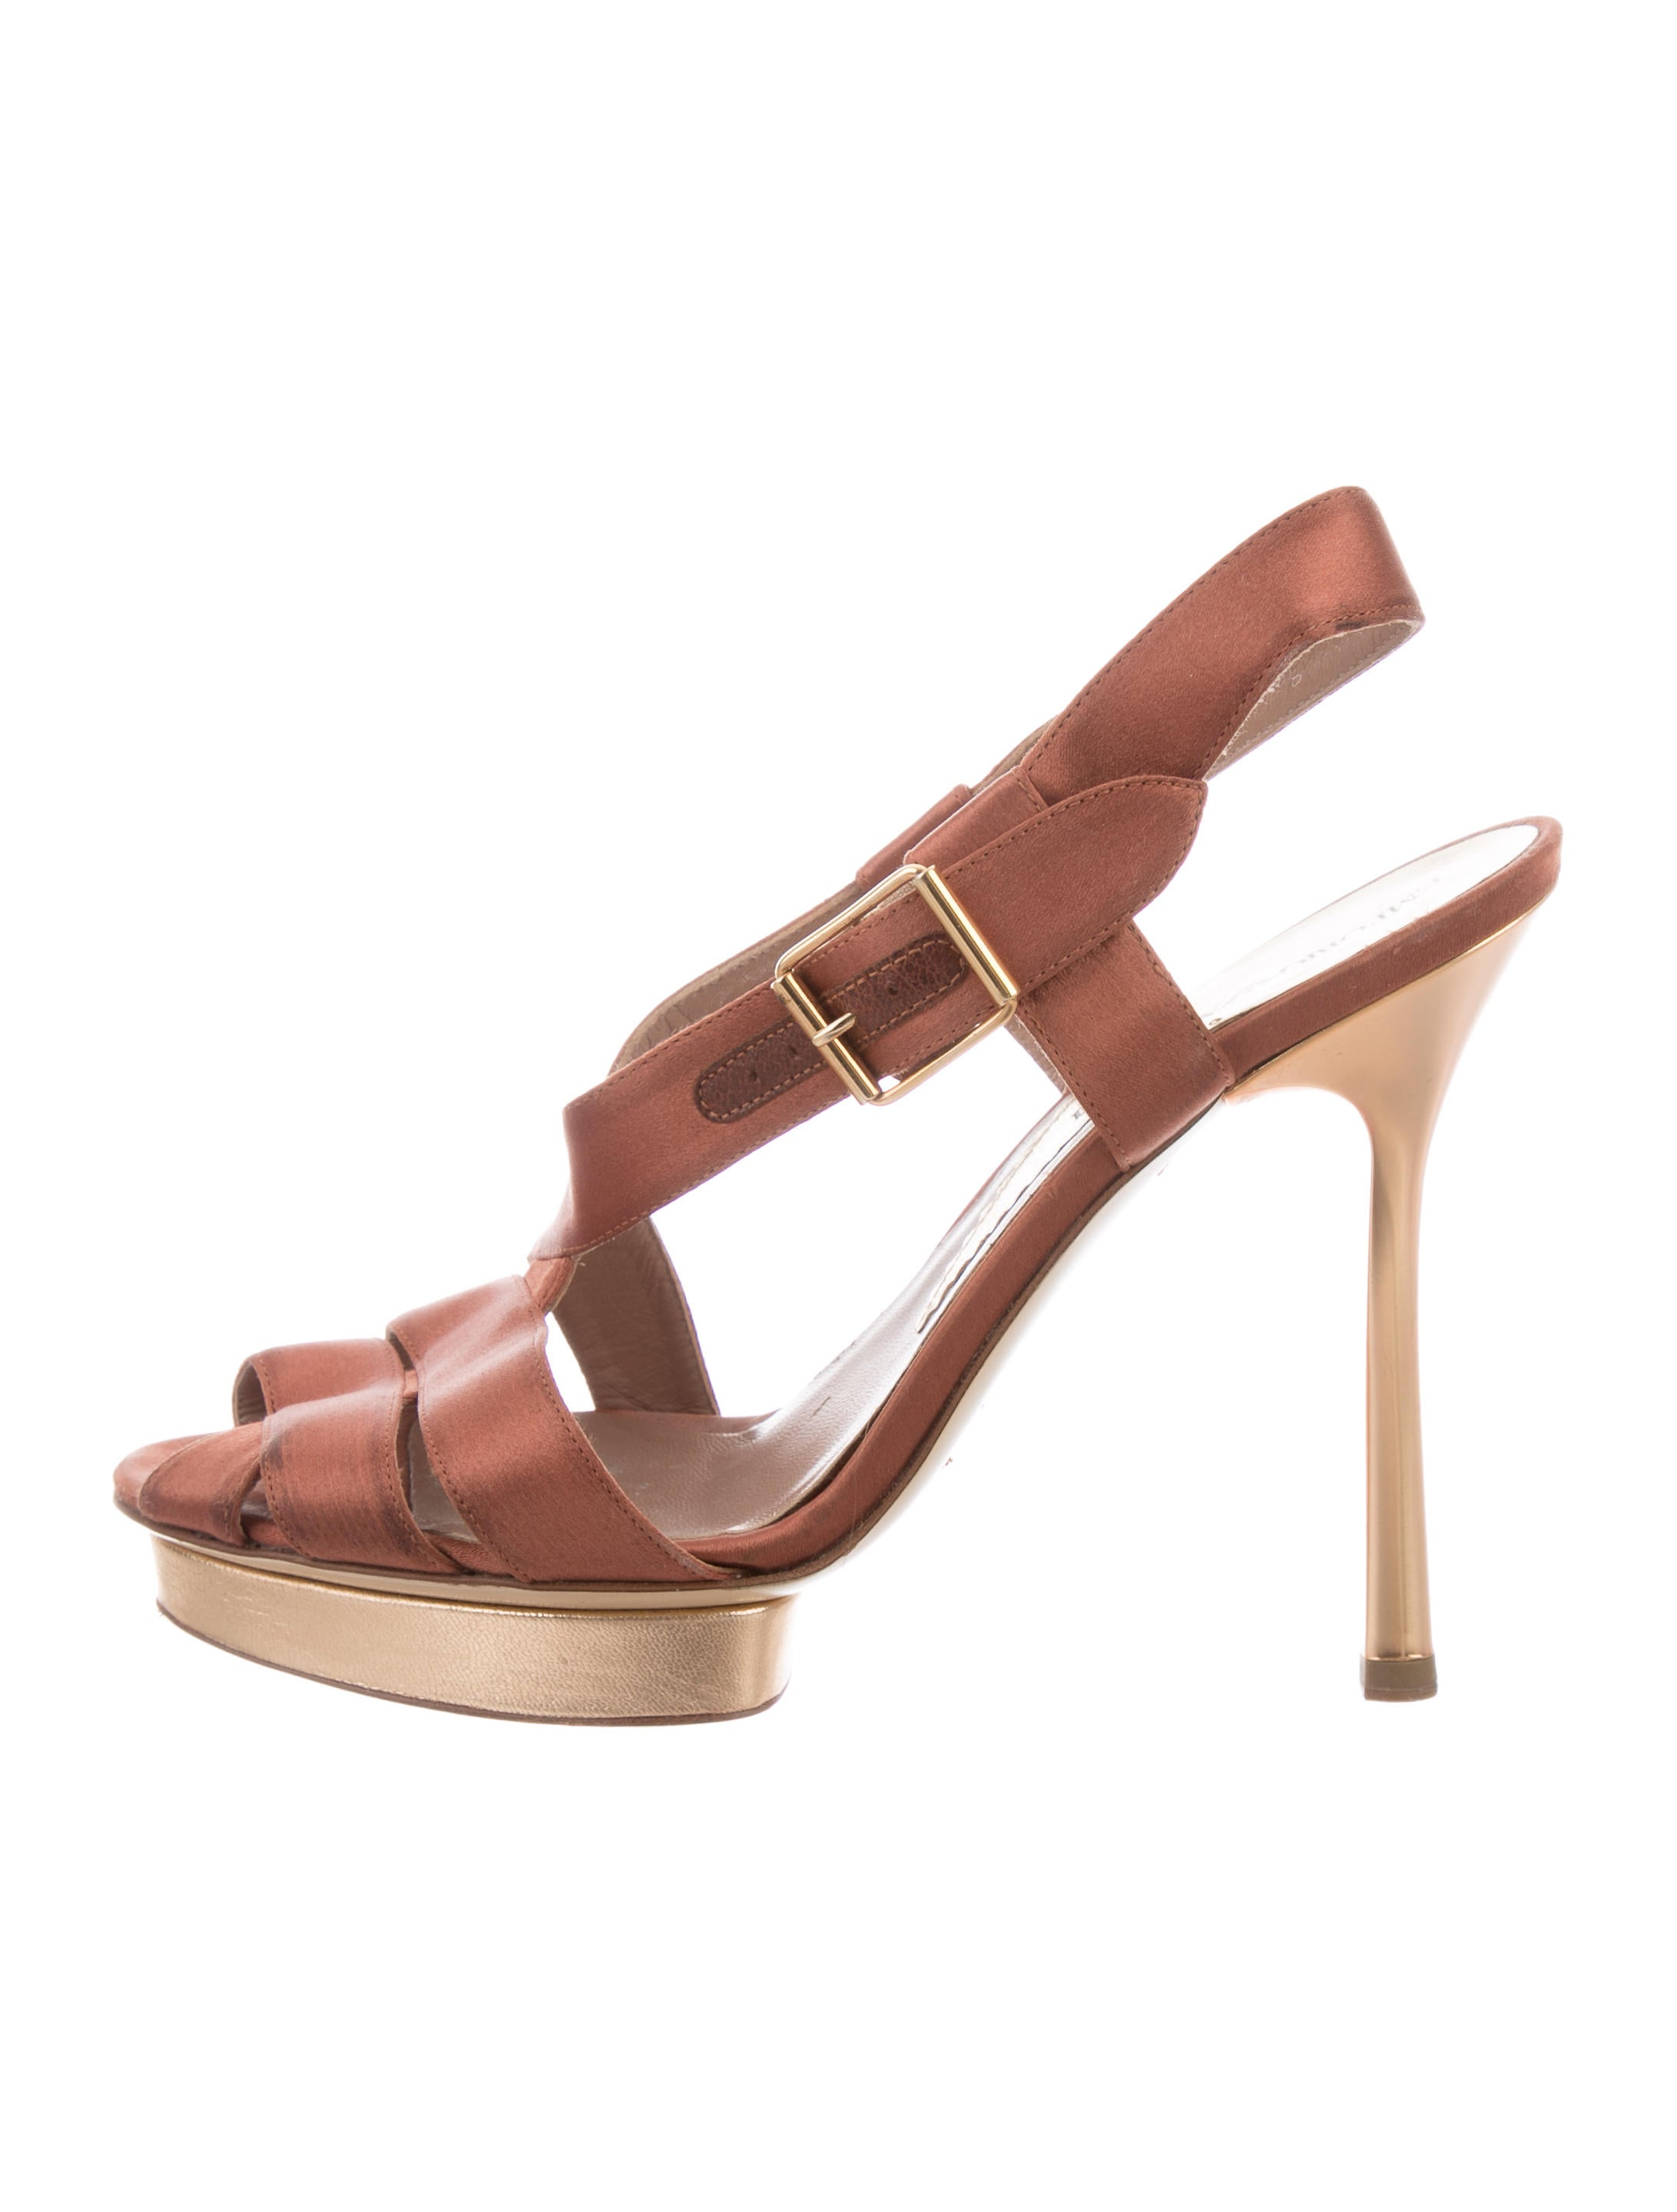 free shipping 2015 authentic sale online Emporio Armani Satin Slingback Sandals lIcmkIrk